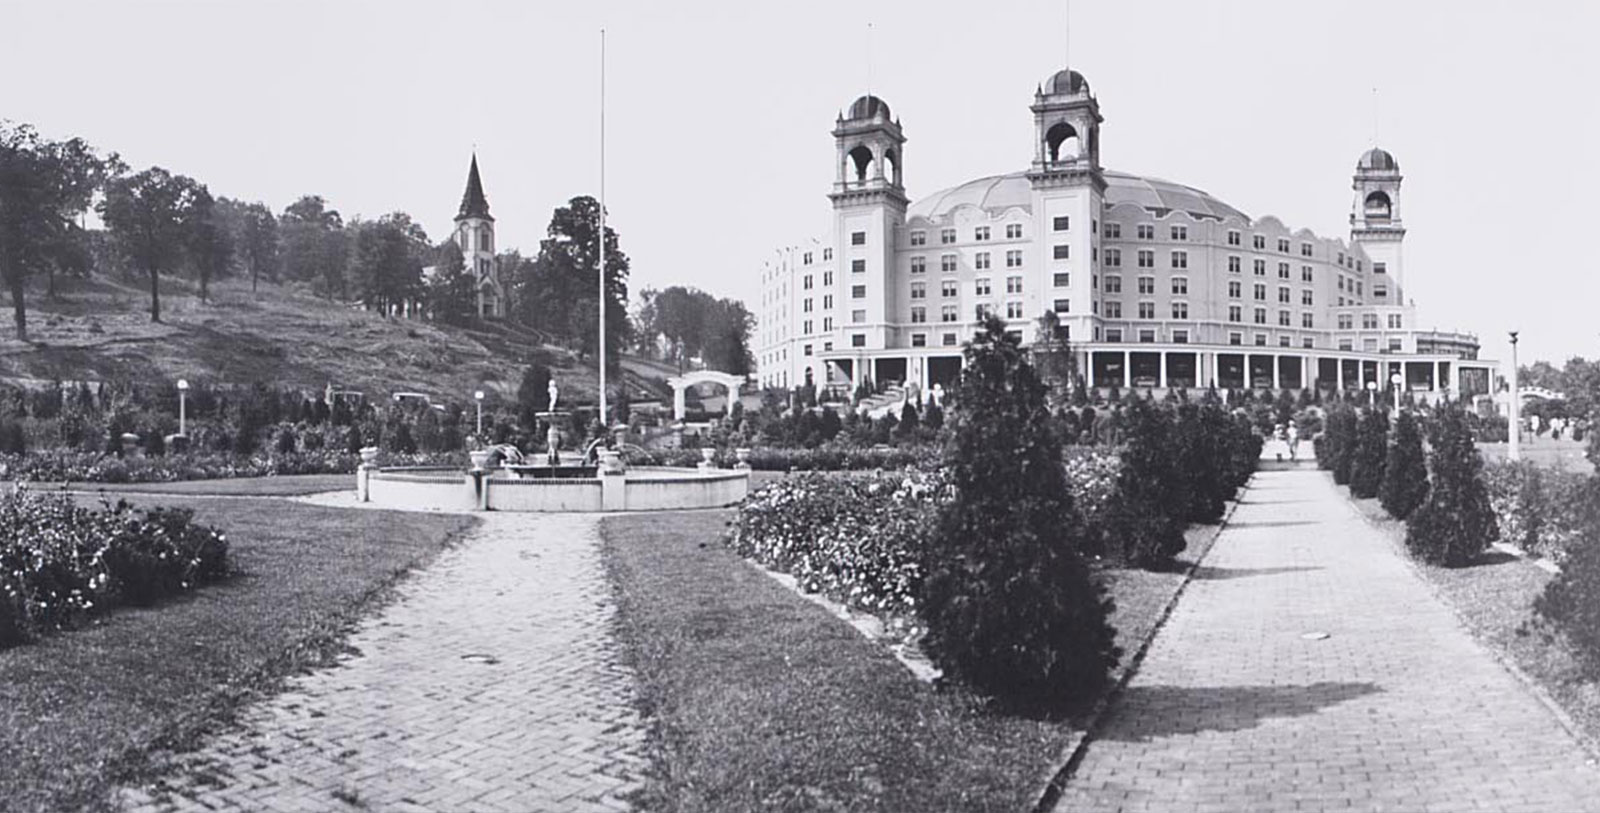 Historic image of hotel exterior at West Baden Springs Hotel, 1902, Member of Historic Hotels of America, in West Baden Springs, Indiana, Discover